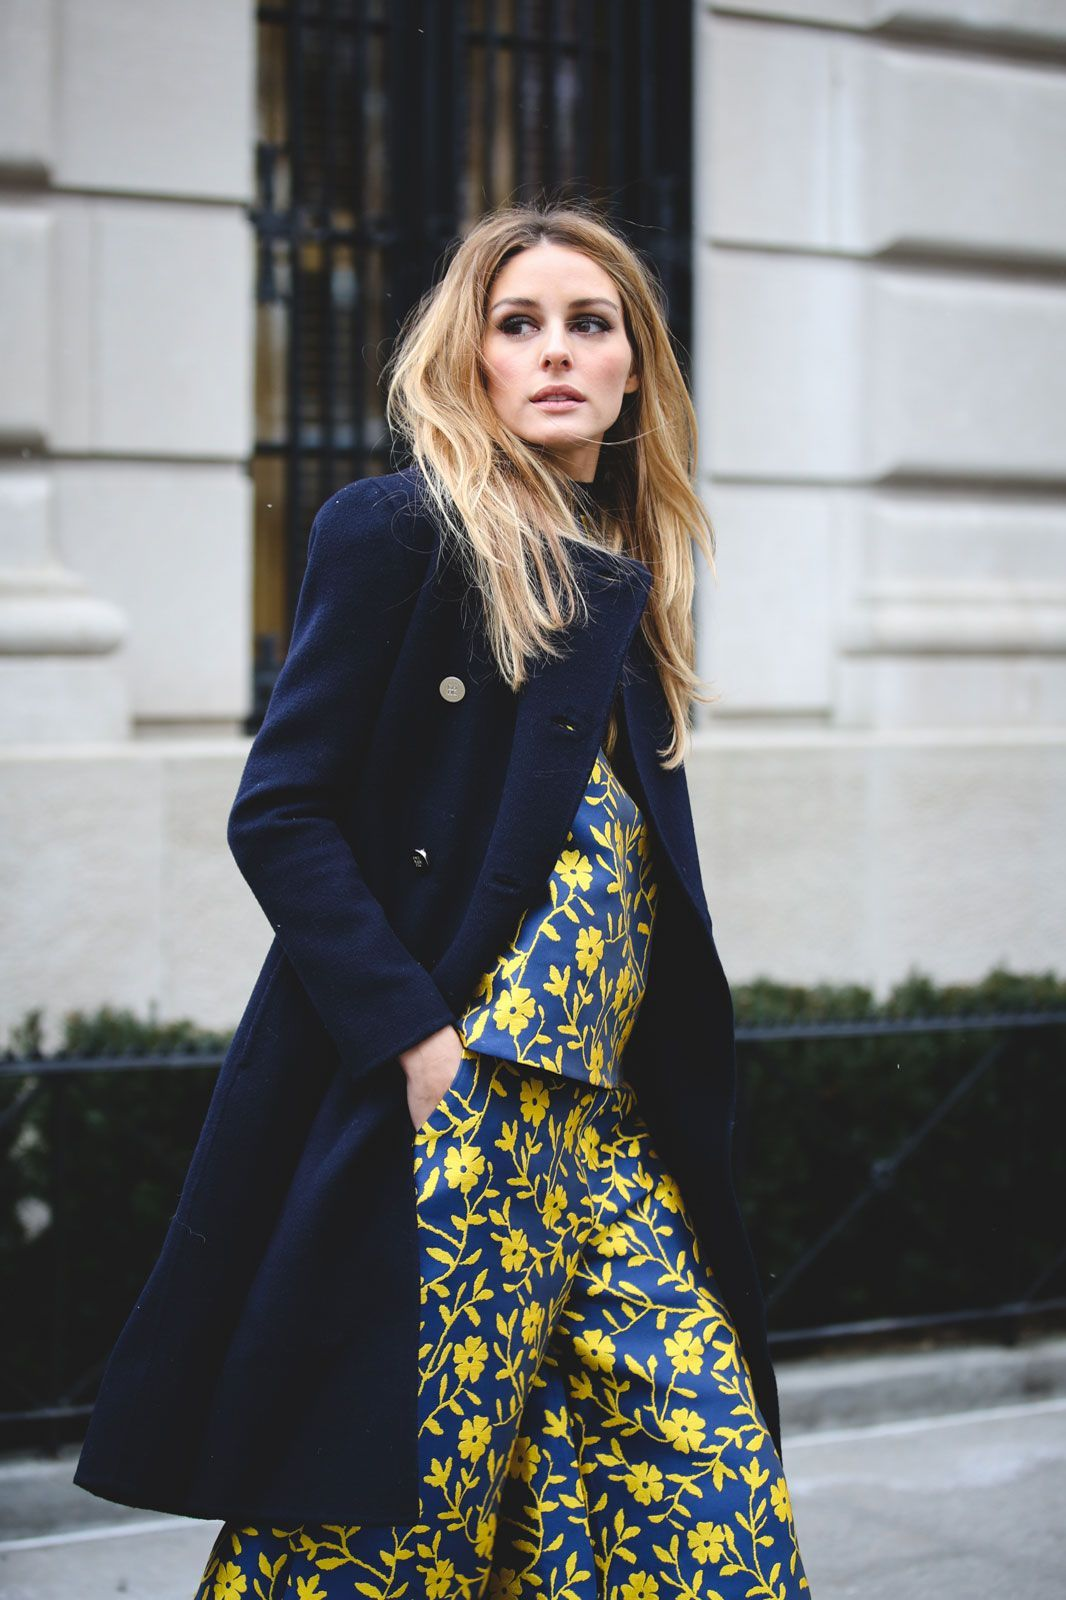 According to Olivia Palermo, matching sets aren't going anywhere. #refinery29 http://www.refinery29.com/2016/02/103173/ny-fashion-week-fall-winter-2016-street-style-pictures#slide-65